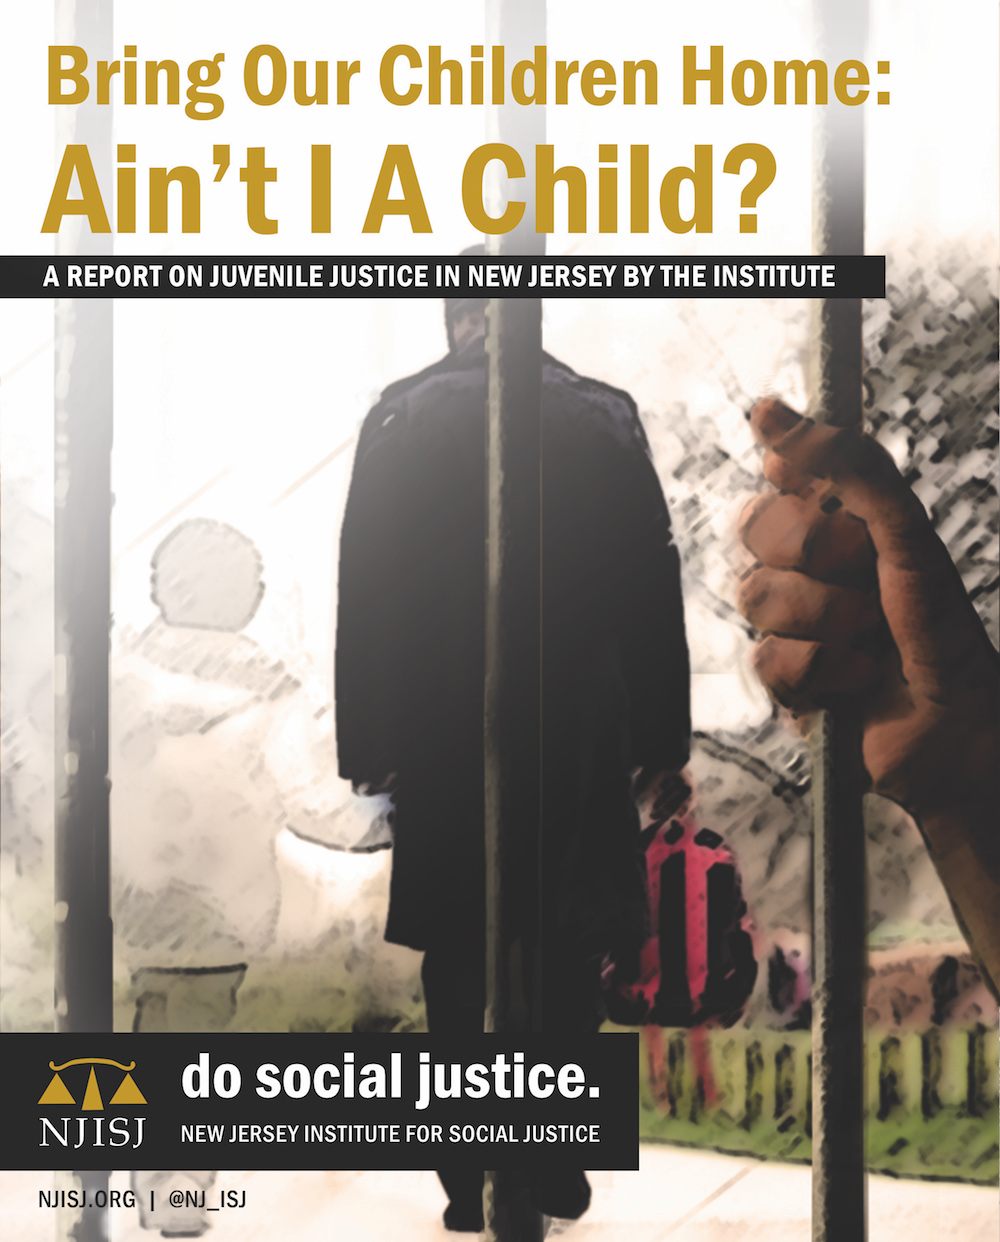 Associate Counsel Andrea McChristian finds that extreme racial disparities exist in New Jersey's juvenile justice system, despite similar rates of offending for Black and white youth.